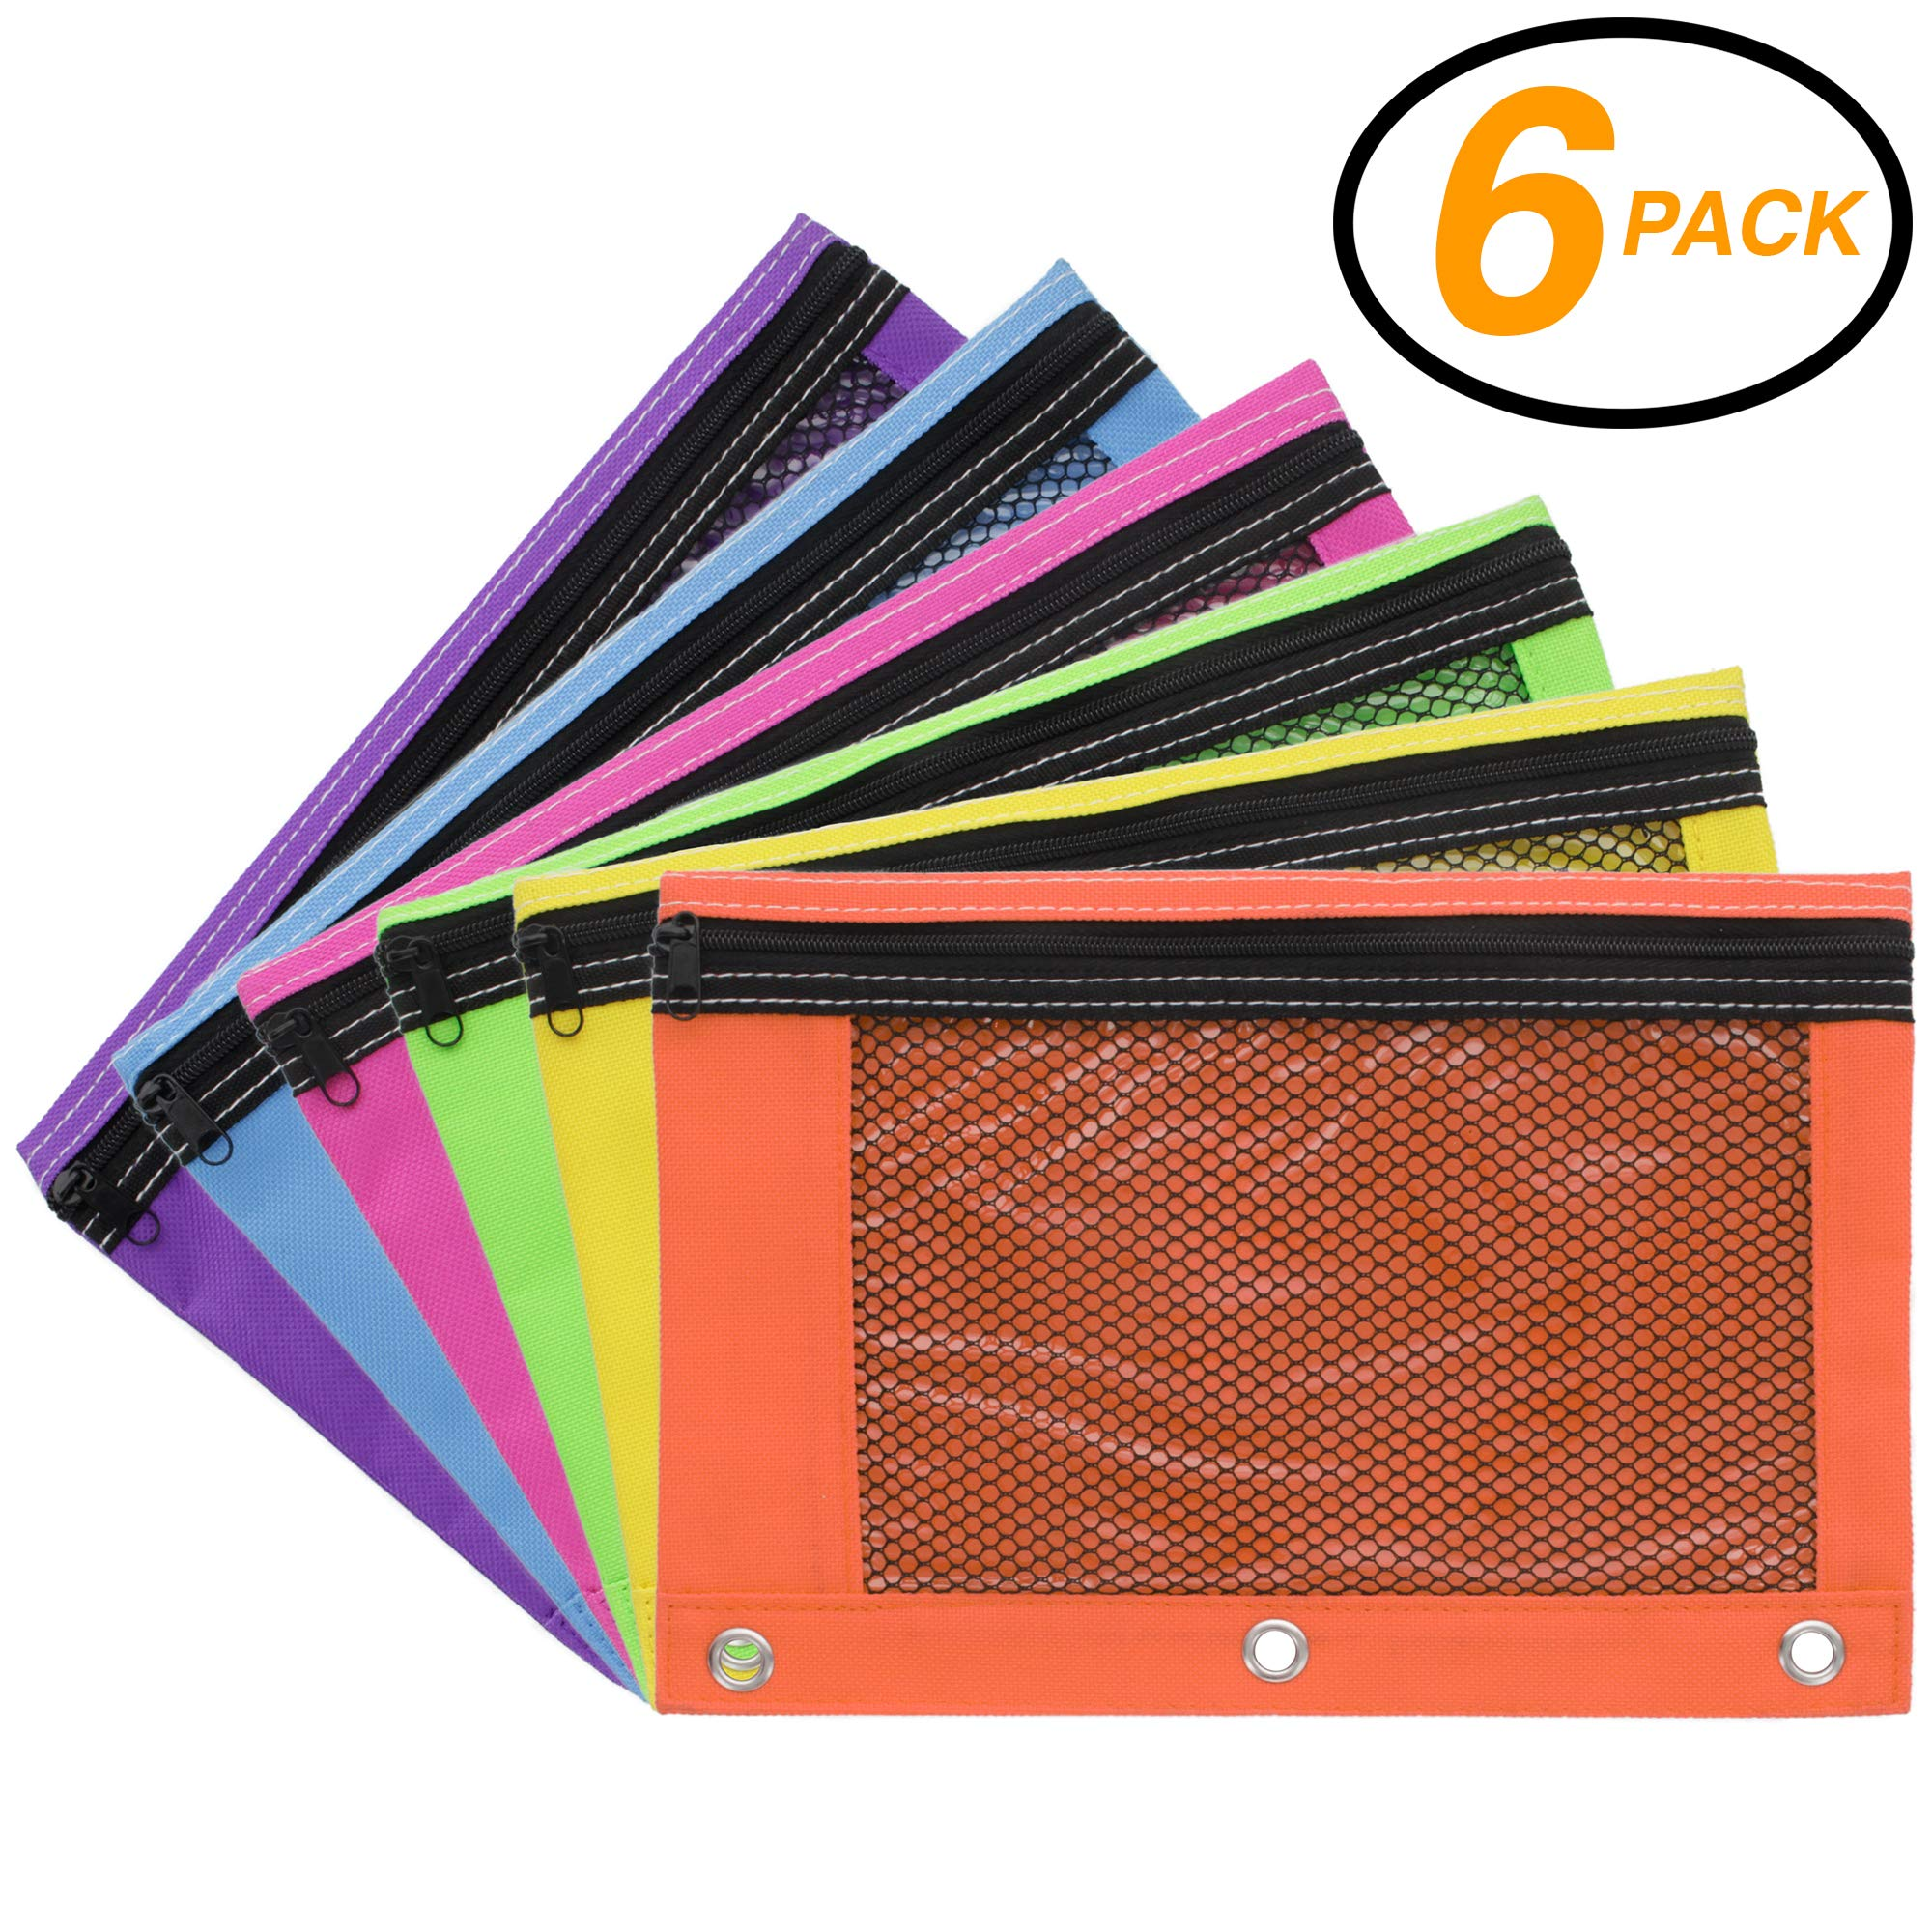 Emraw 3-Ring Pencil Pouches - Bright Color Pencil Pouch with Zipper Pockets for 3-Ring Binder Pen Holder Case, Cute pencil bags with zipper for Girls and Boys (6-Pack)